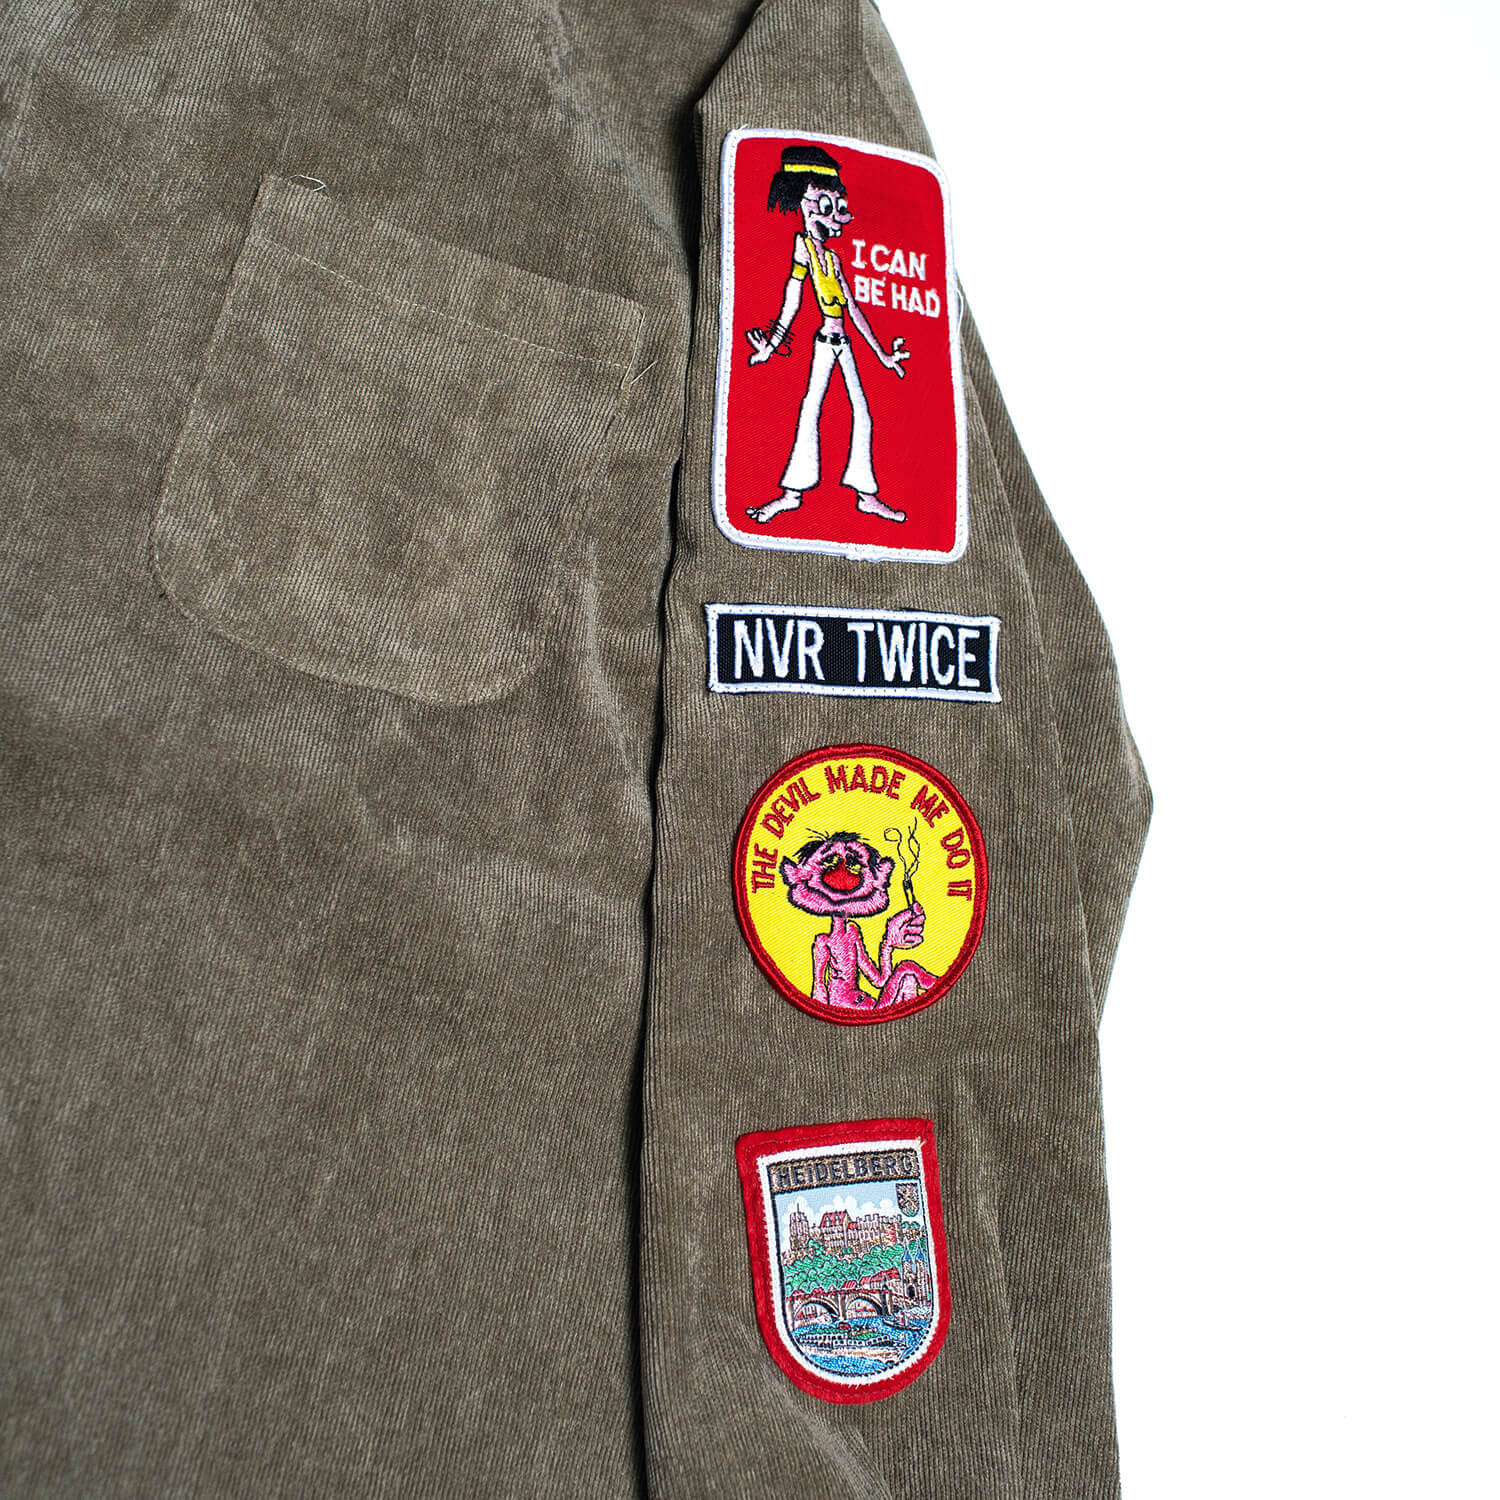 Hill Bomber Women's Jacket patches